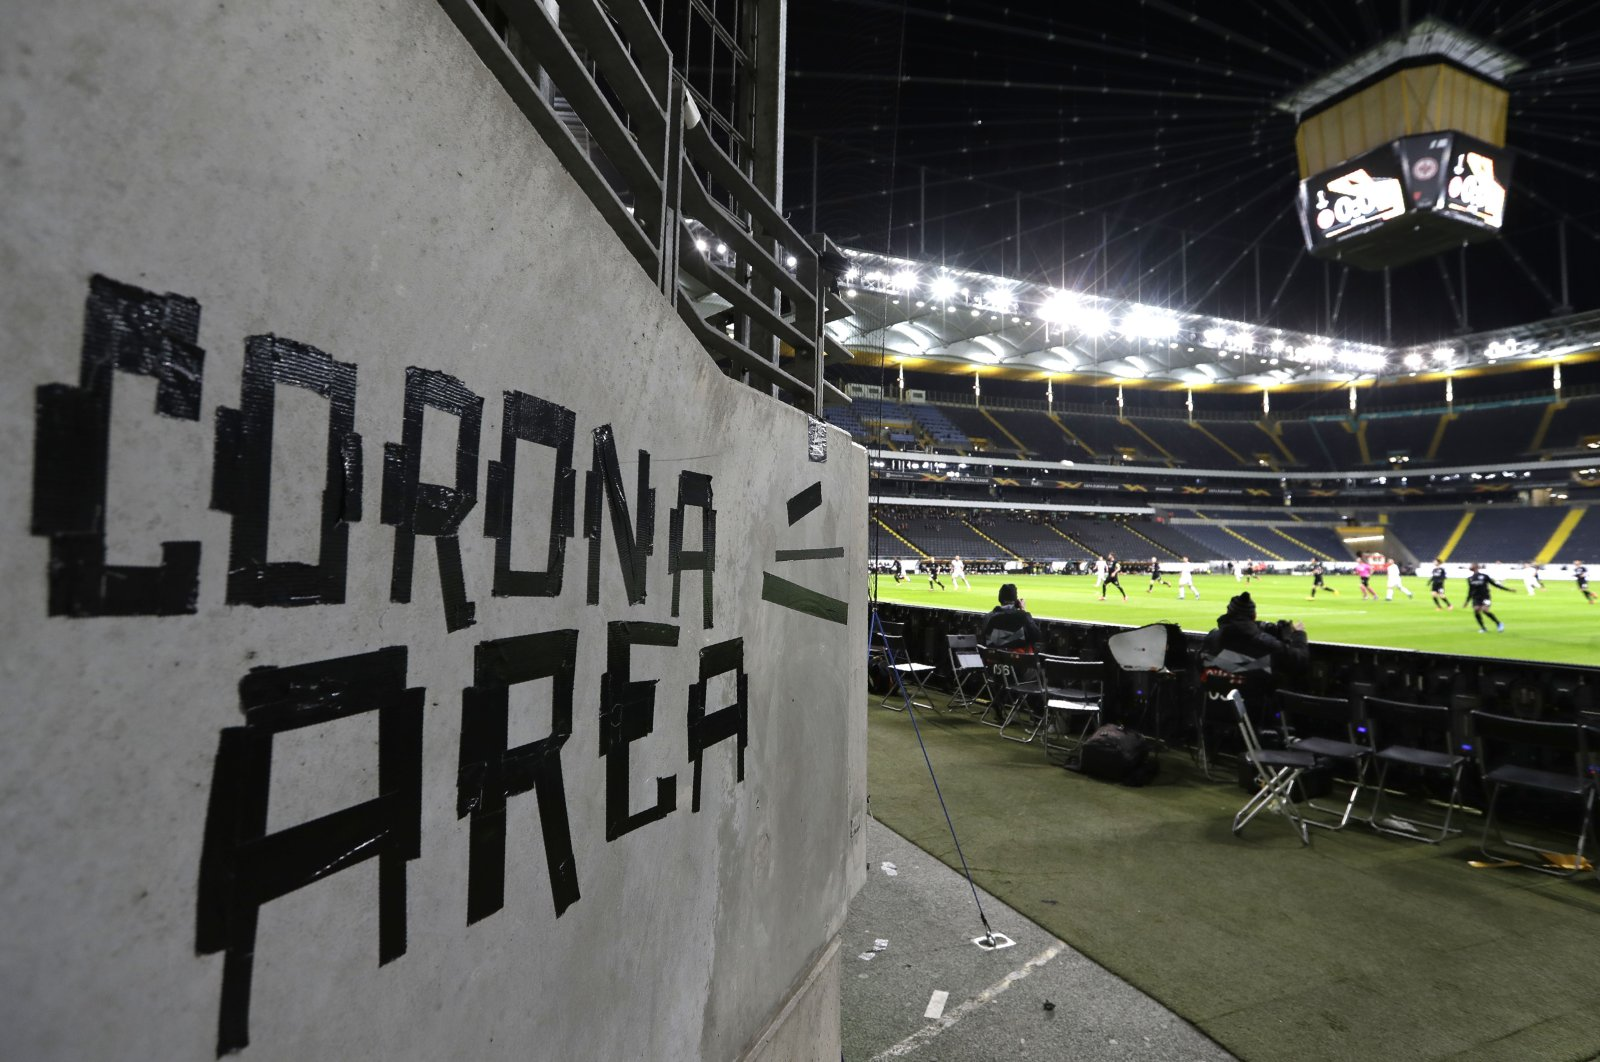 In this Thursday, March 12, 2020 file photo shows a sign taped by Eintracht fans on a wall of the stadium during a Europa League round of 16, 1st leg football match between Eintracht Frankfurt and FC Basel in Frankfurt, Germany. (AP Photo)